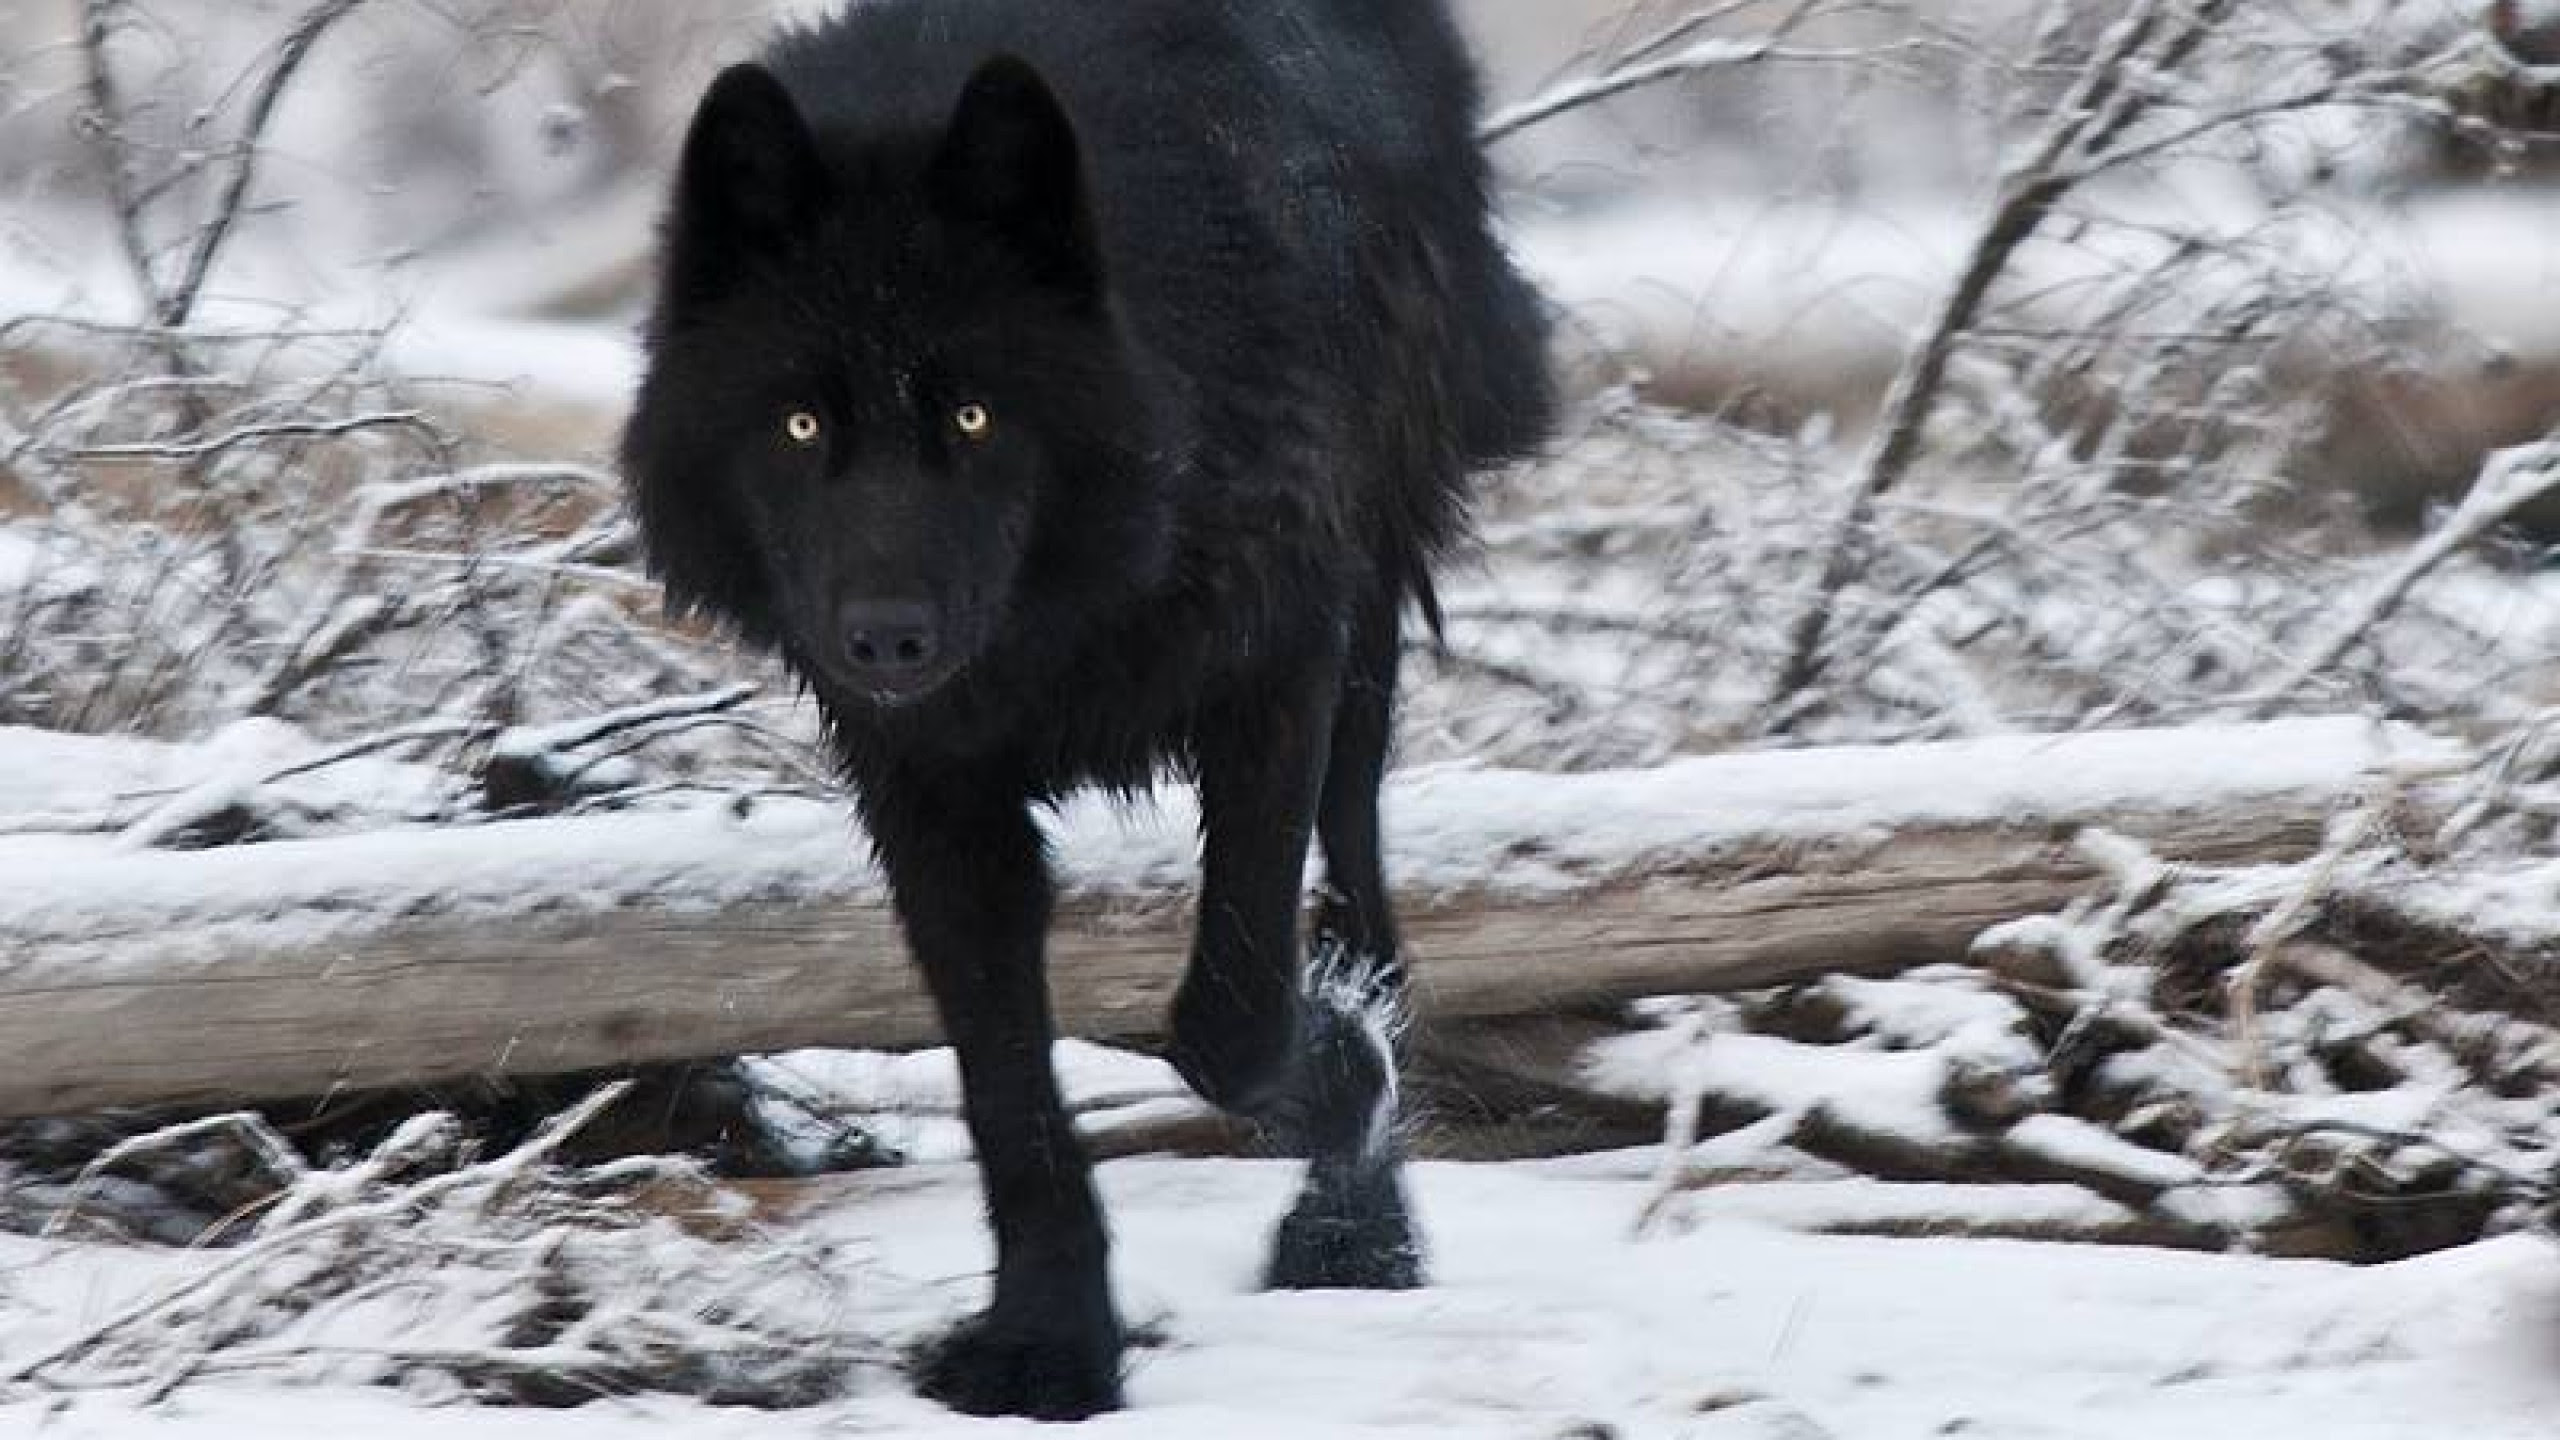 Black Wolf Wallpaper Hd Iphone Wallpaper Hd For Android